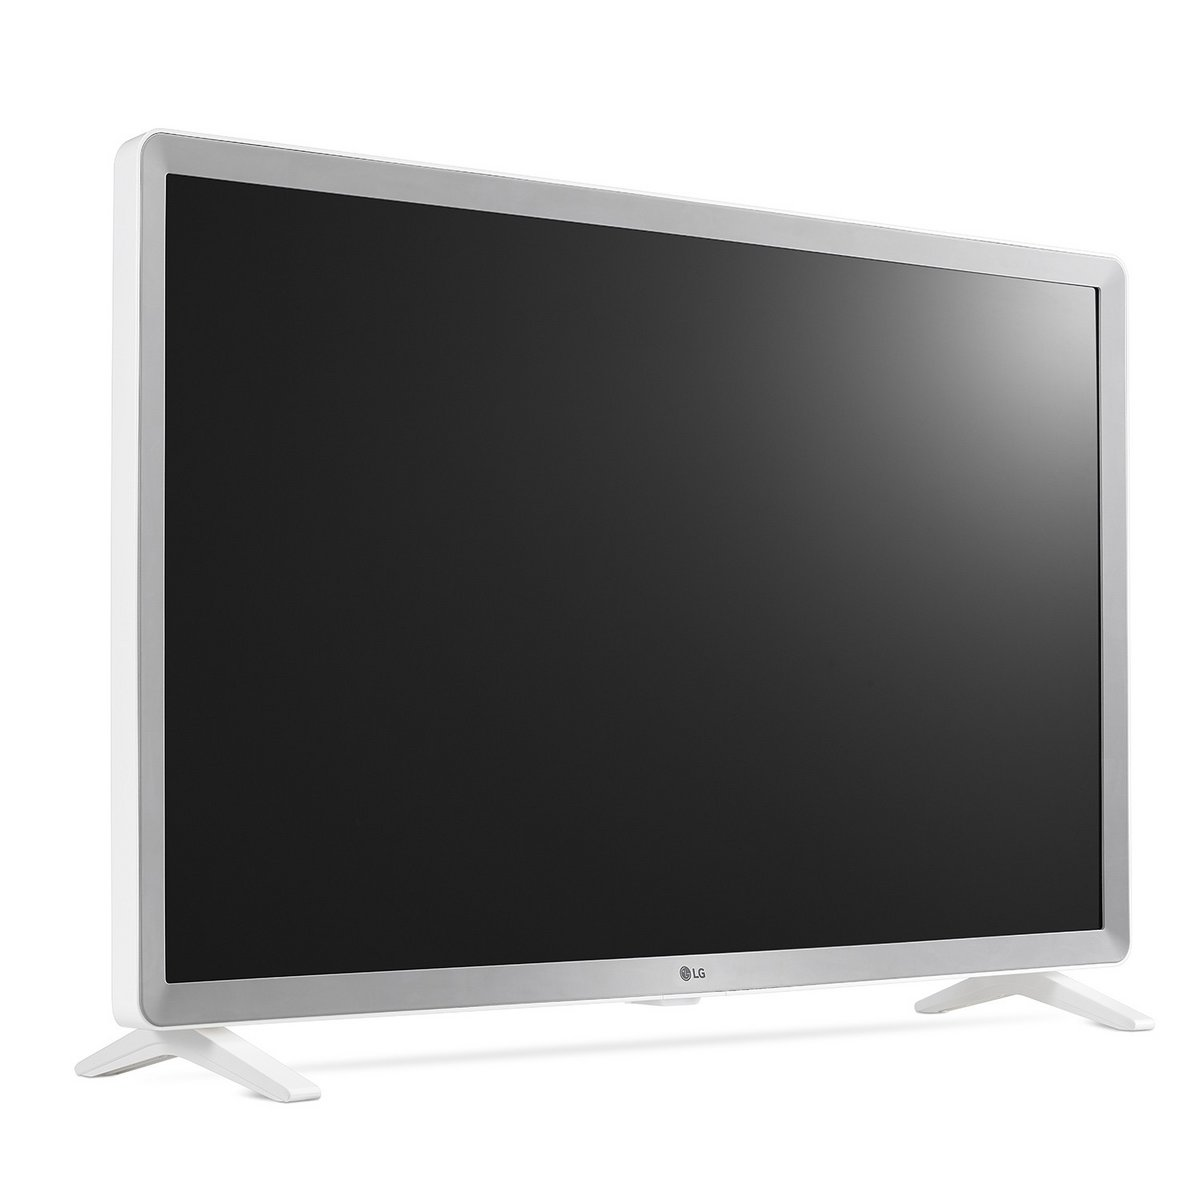 selection-tv-1-LG-32LK6200.jpg